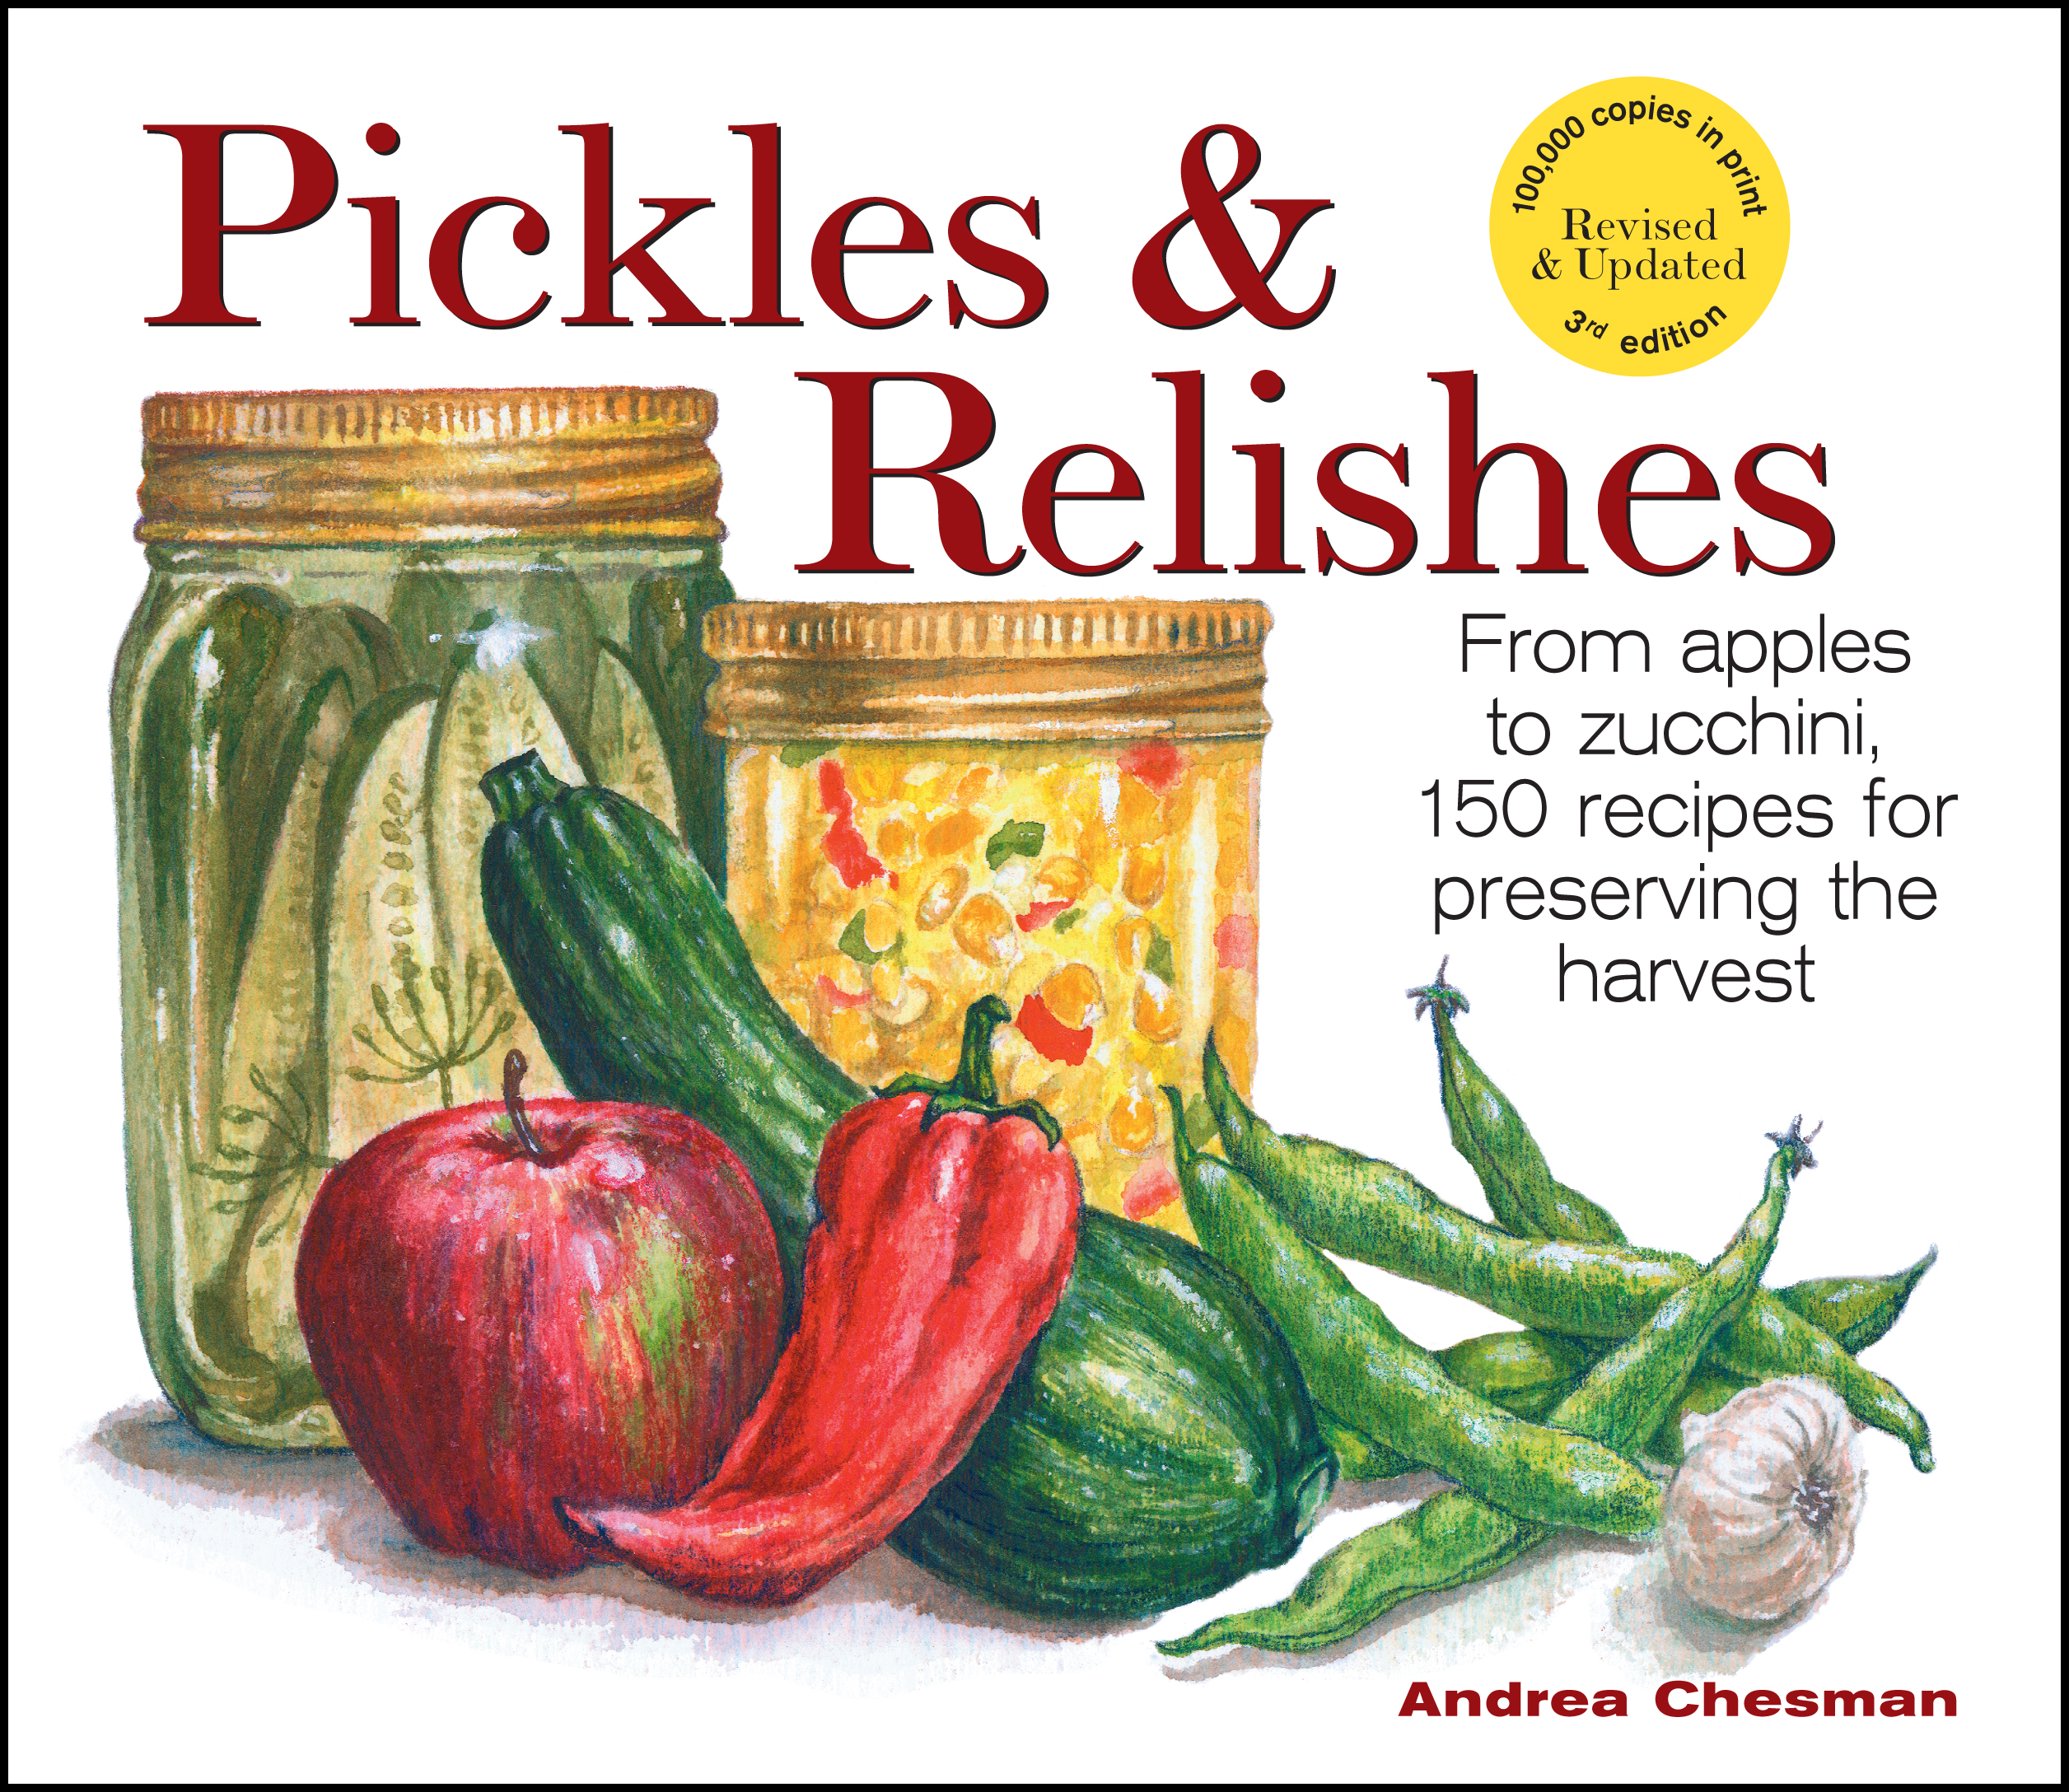 Pickles & Relishes From apples to zucchini, 150 recipes for preserving the harvest - Andrea Chesman